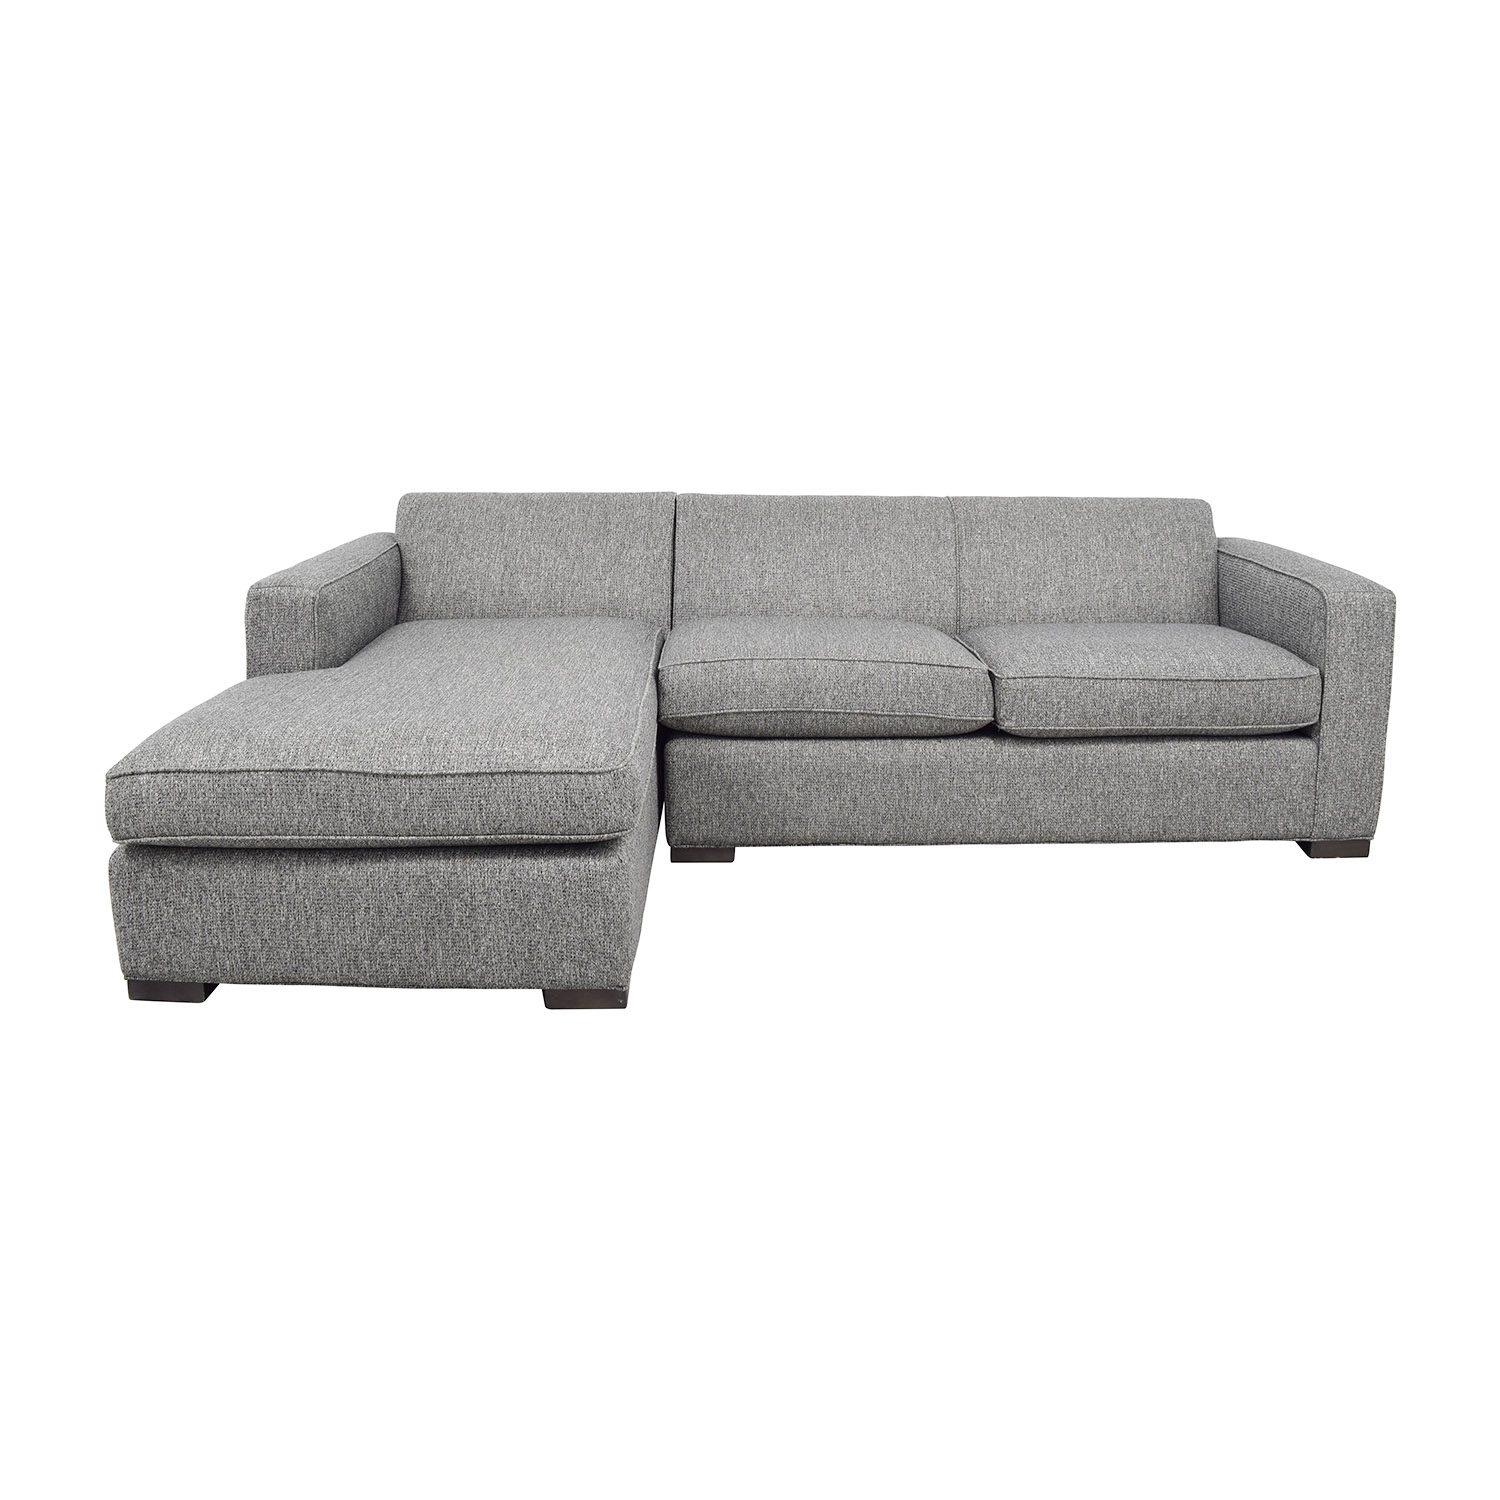 Room & Board Room & Board Easton Sectional in Grey second hand